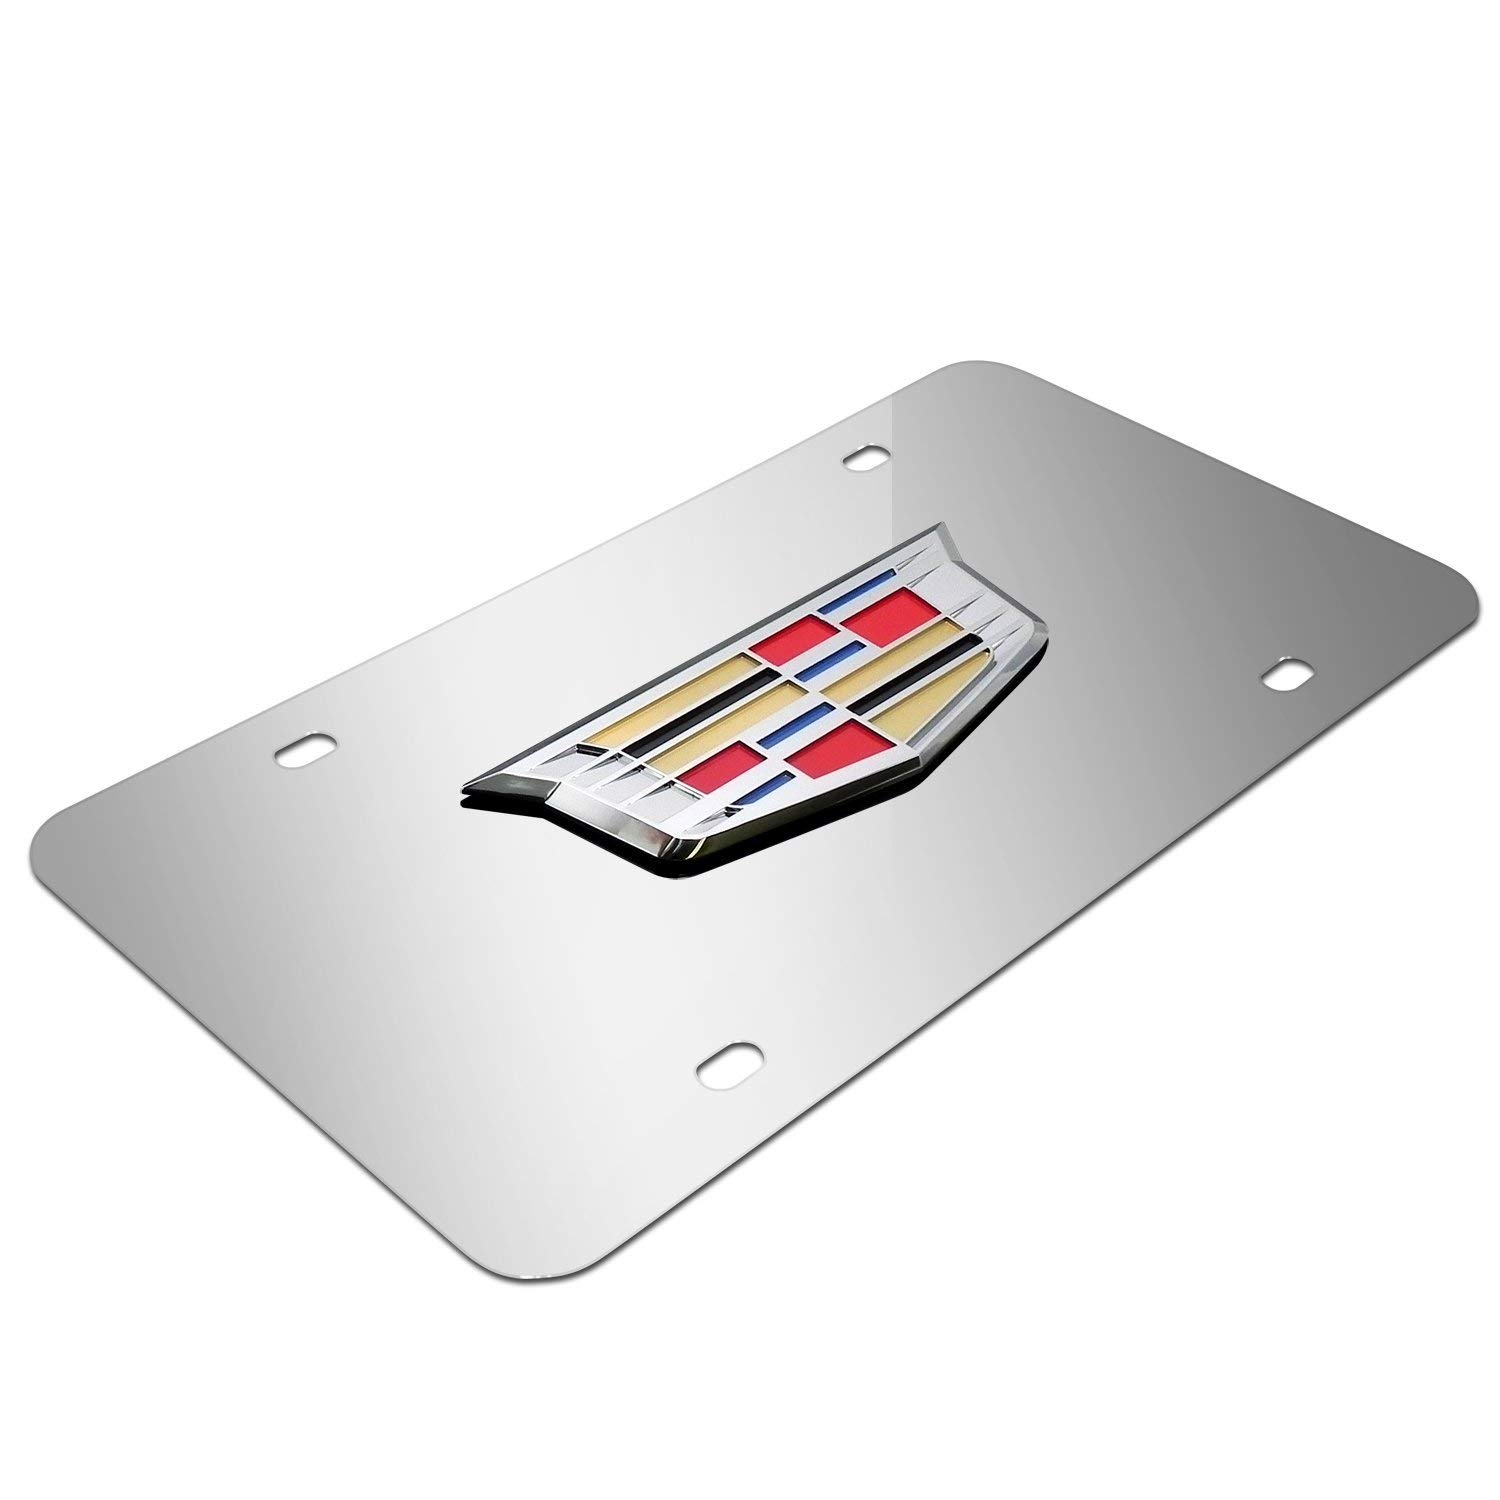 Goodframe for Cadillac Stainless Steel License Plate Frame Silver Chrome 3D Front License Plate Covers for Cadillac All Models